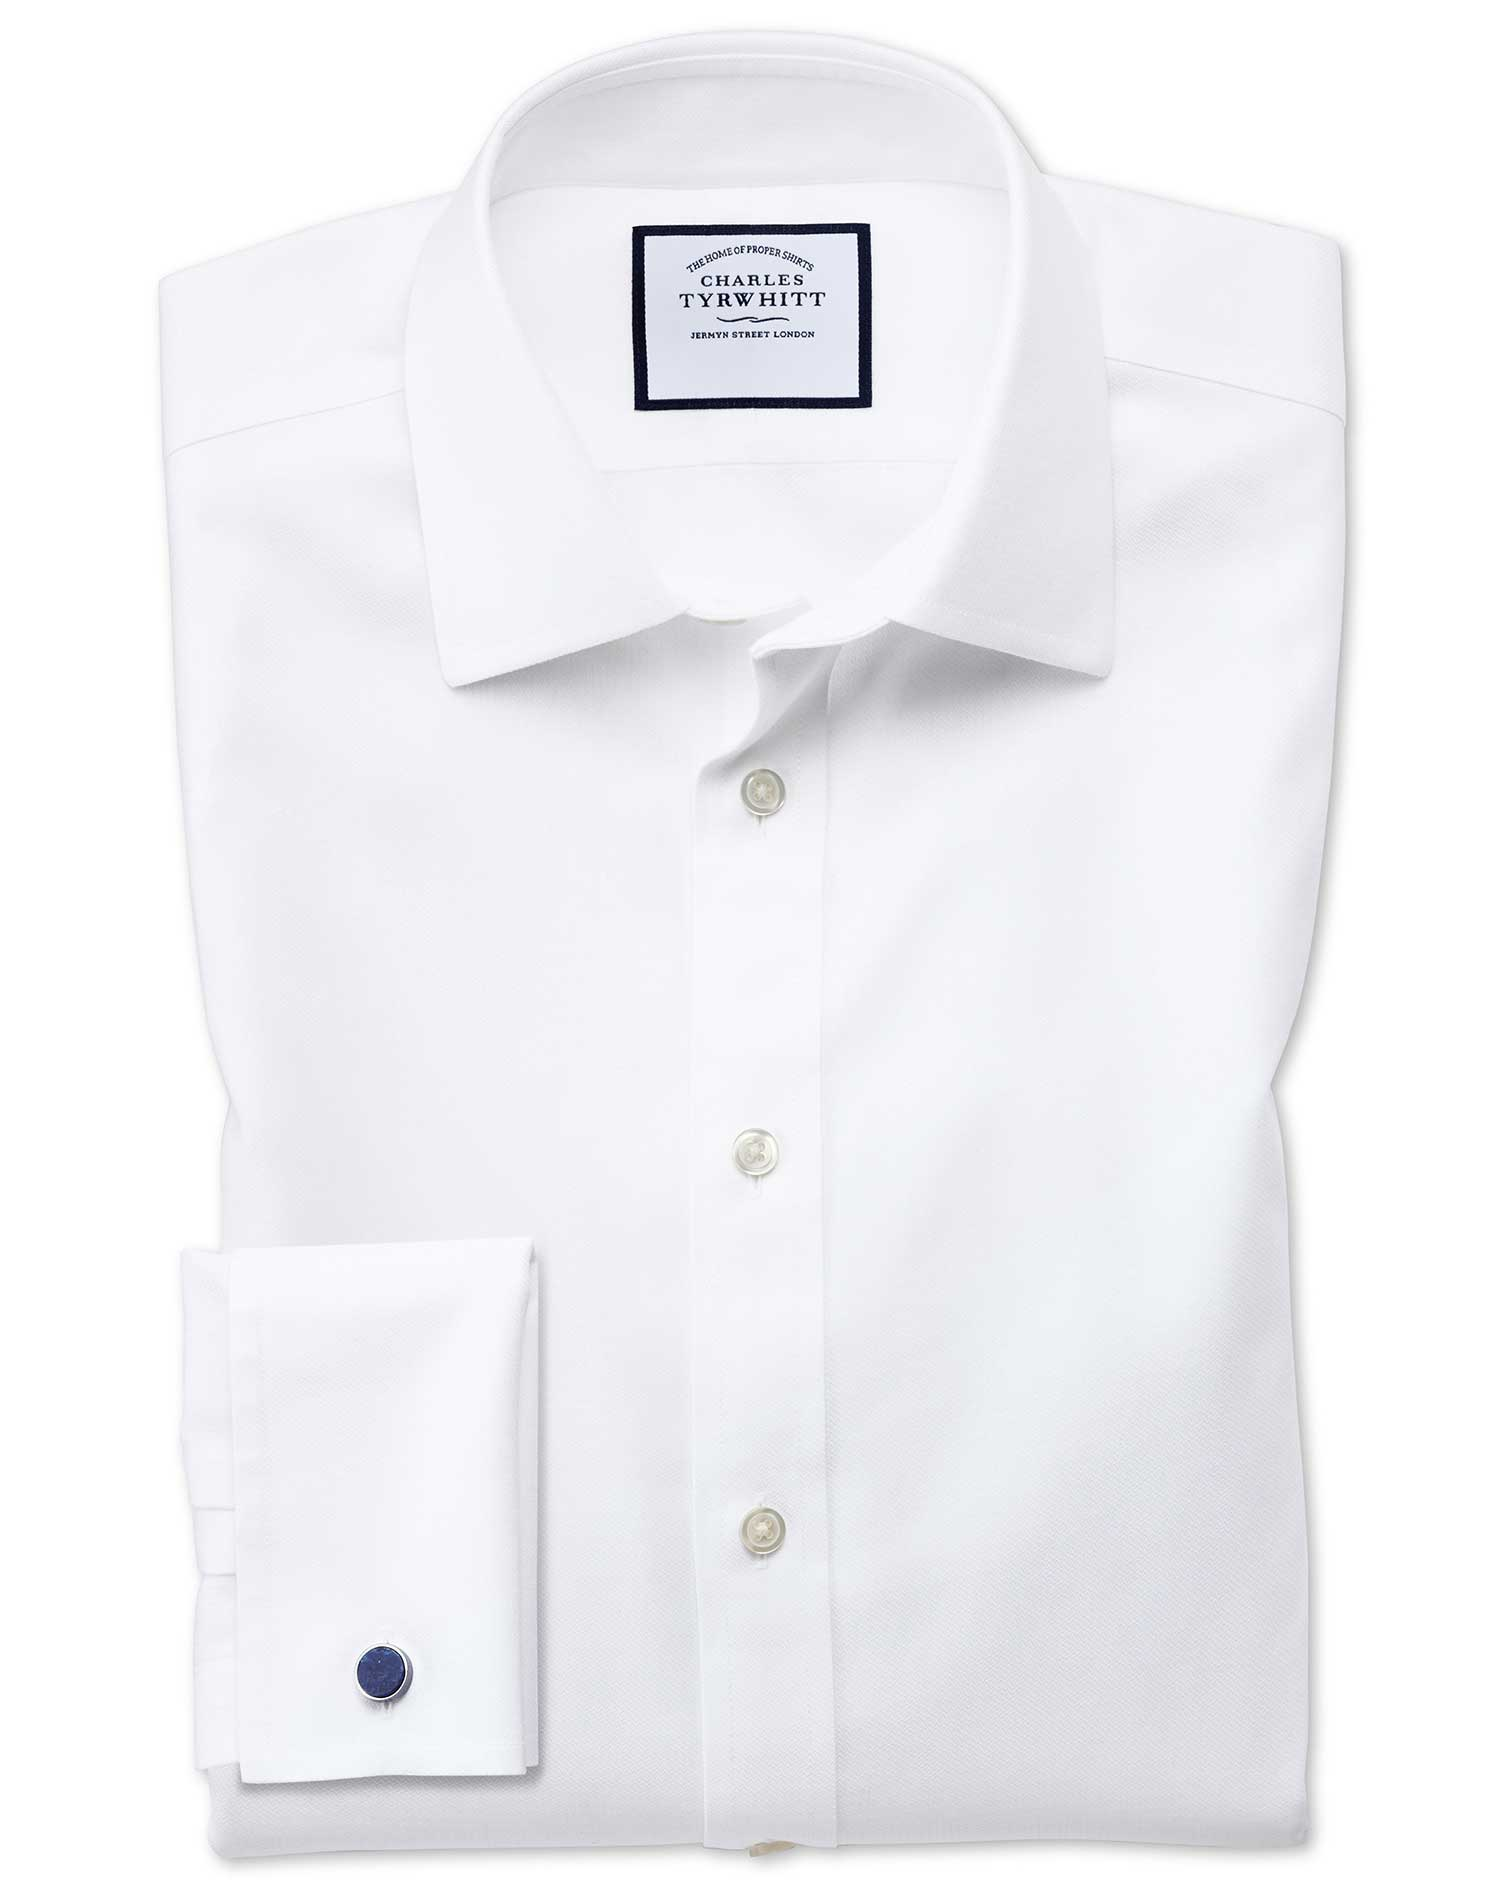 Classic Fit Non-Iron Step Weave White Cotton Formal Shirt Single Cuff Size 15/33 by Charles Tyrwhitt